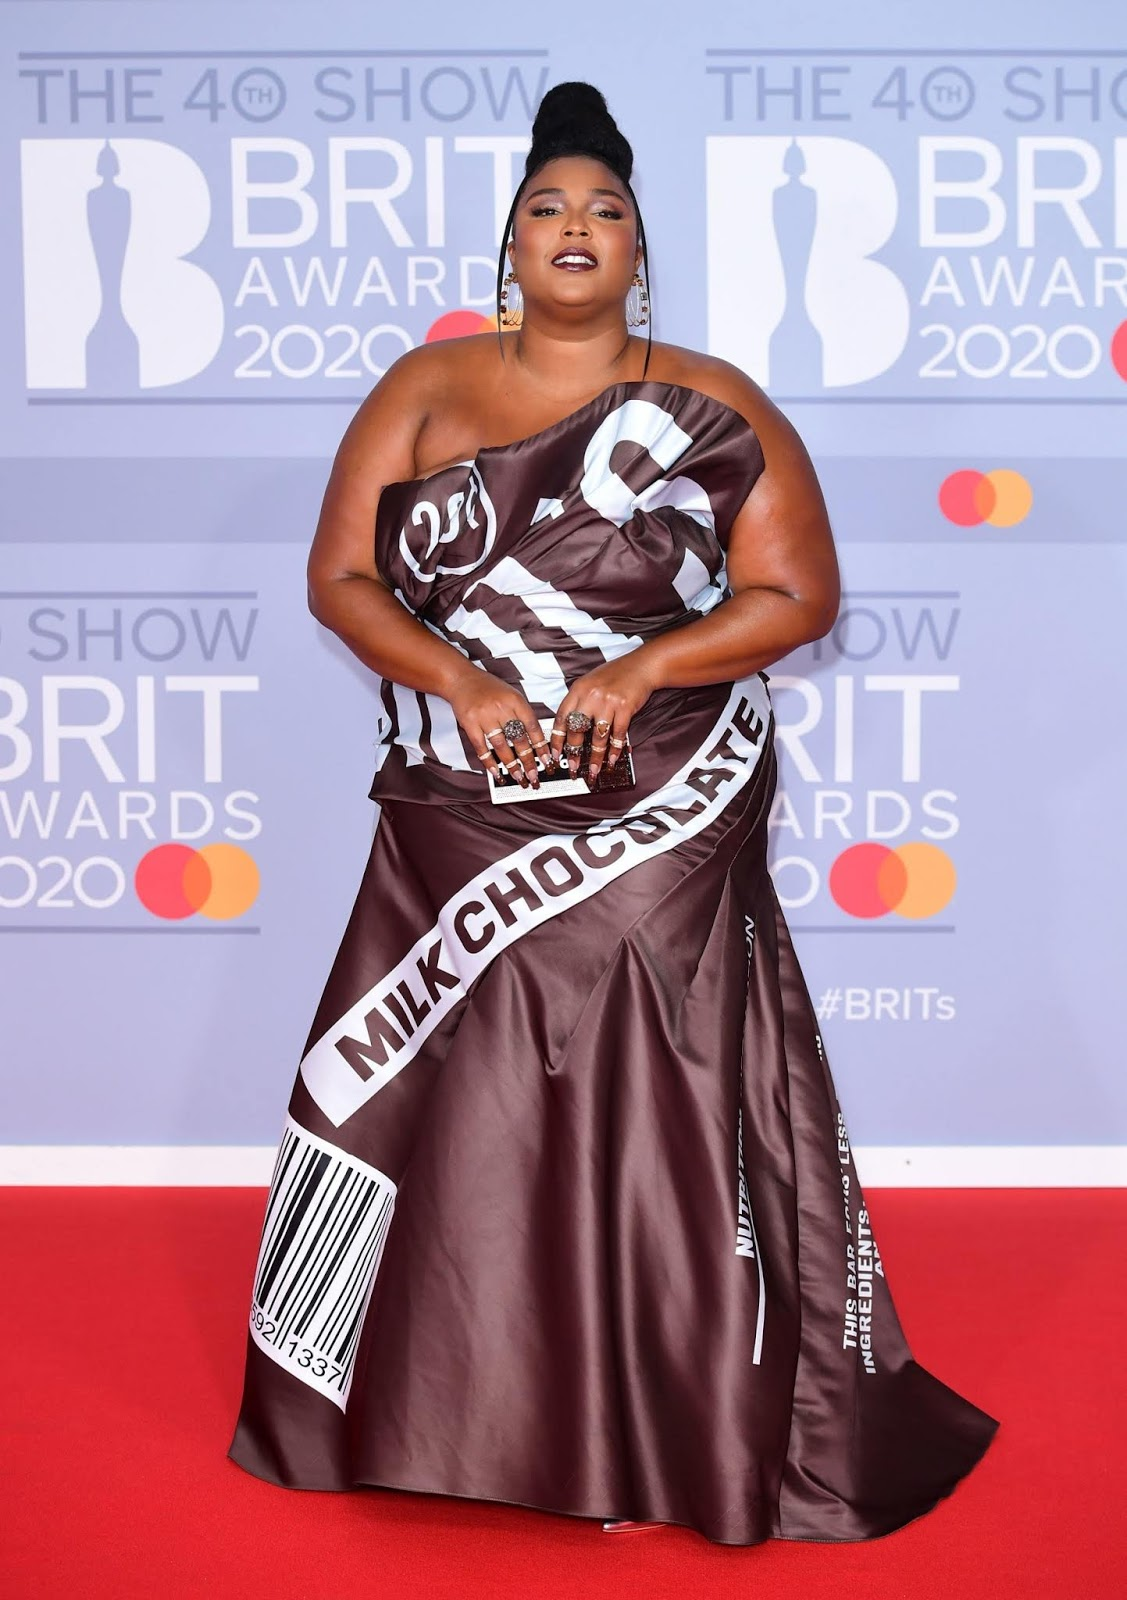 Lizzo is sweeter than chocolate with Hershey's inspired gown